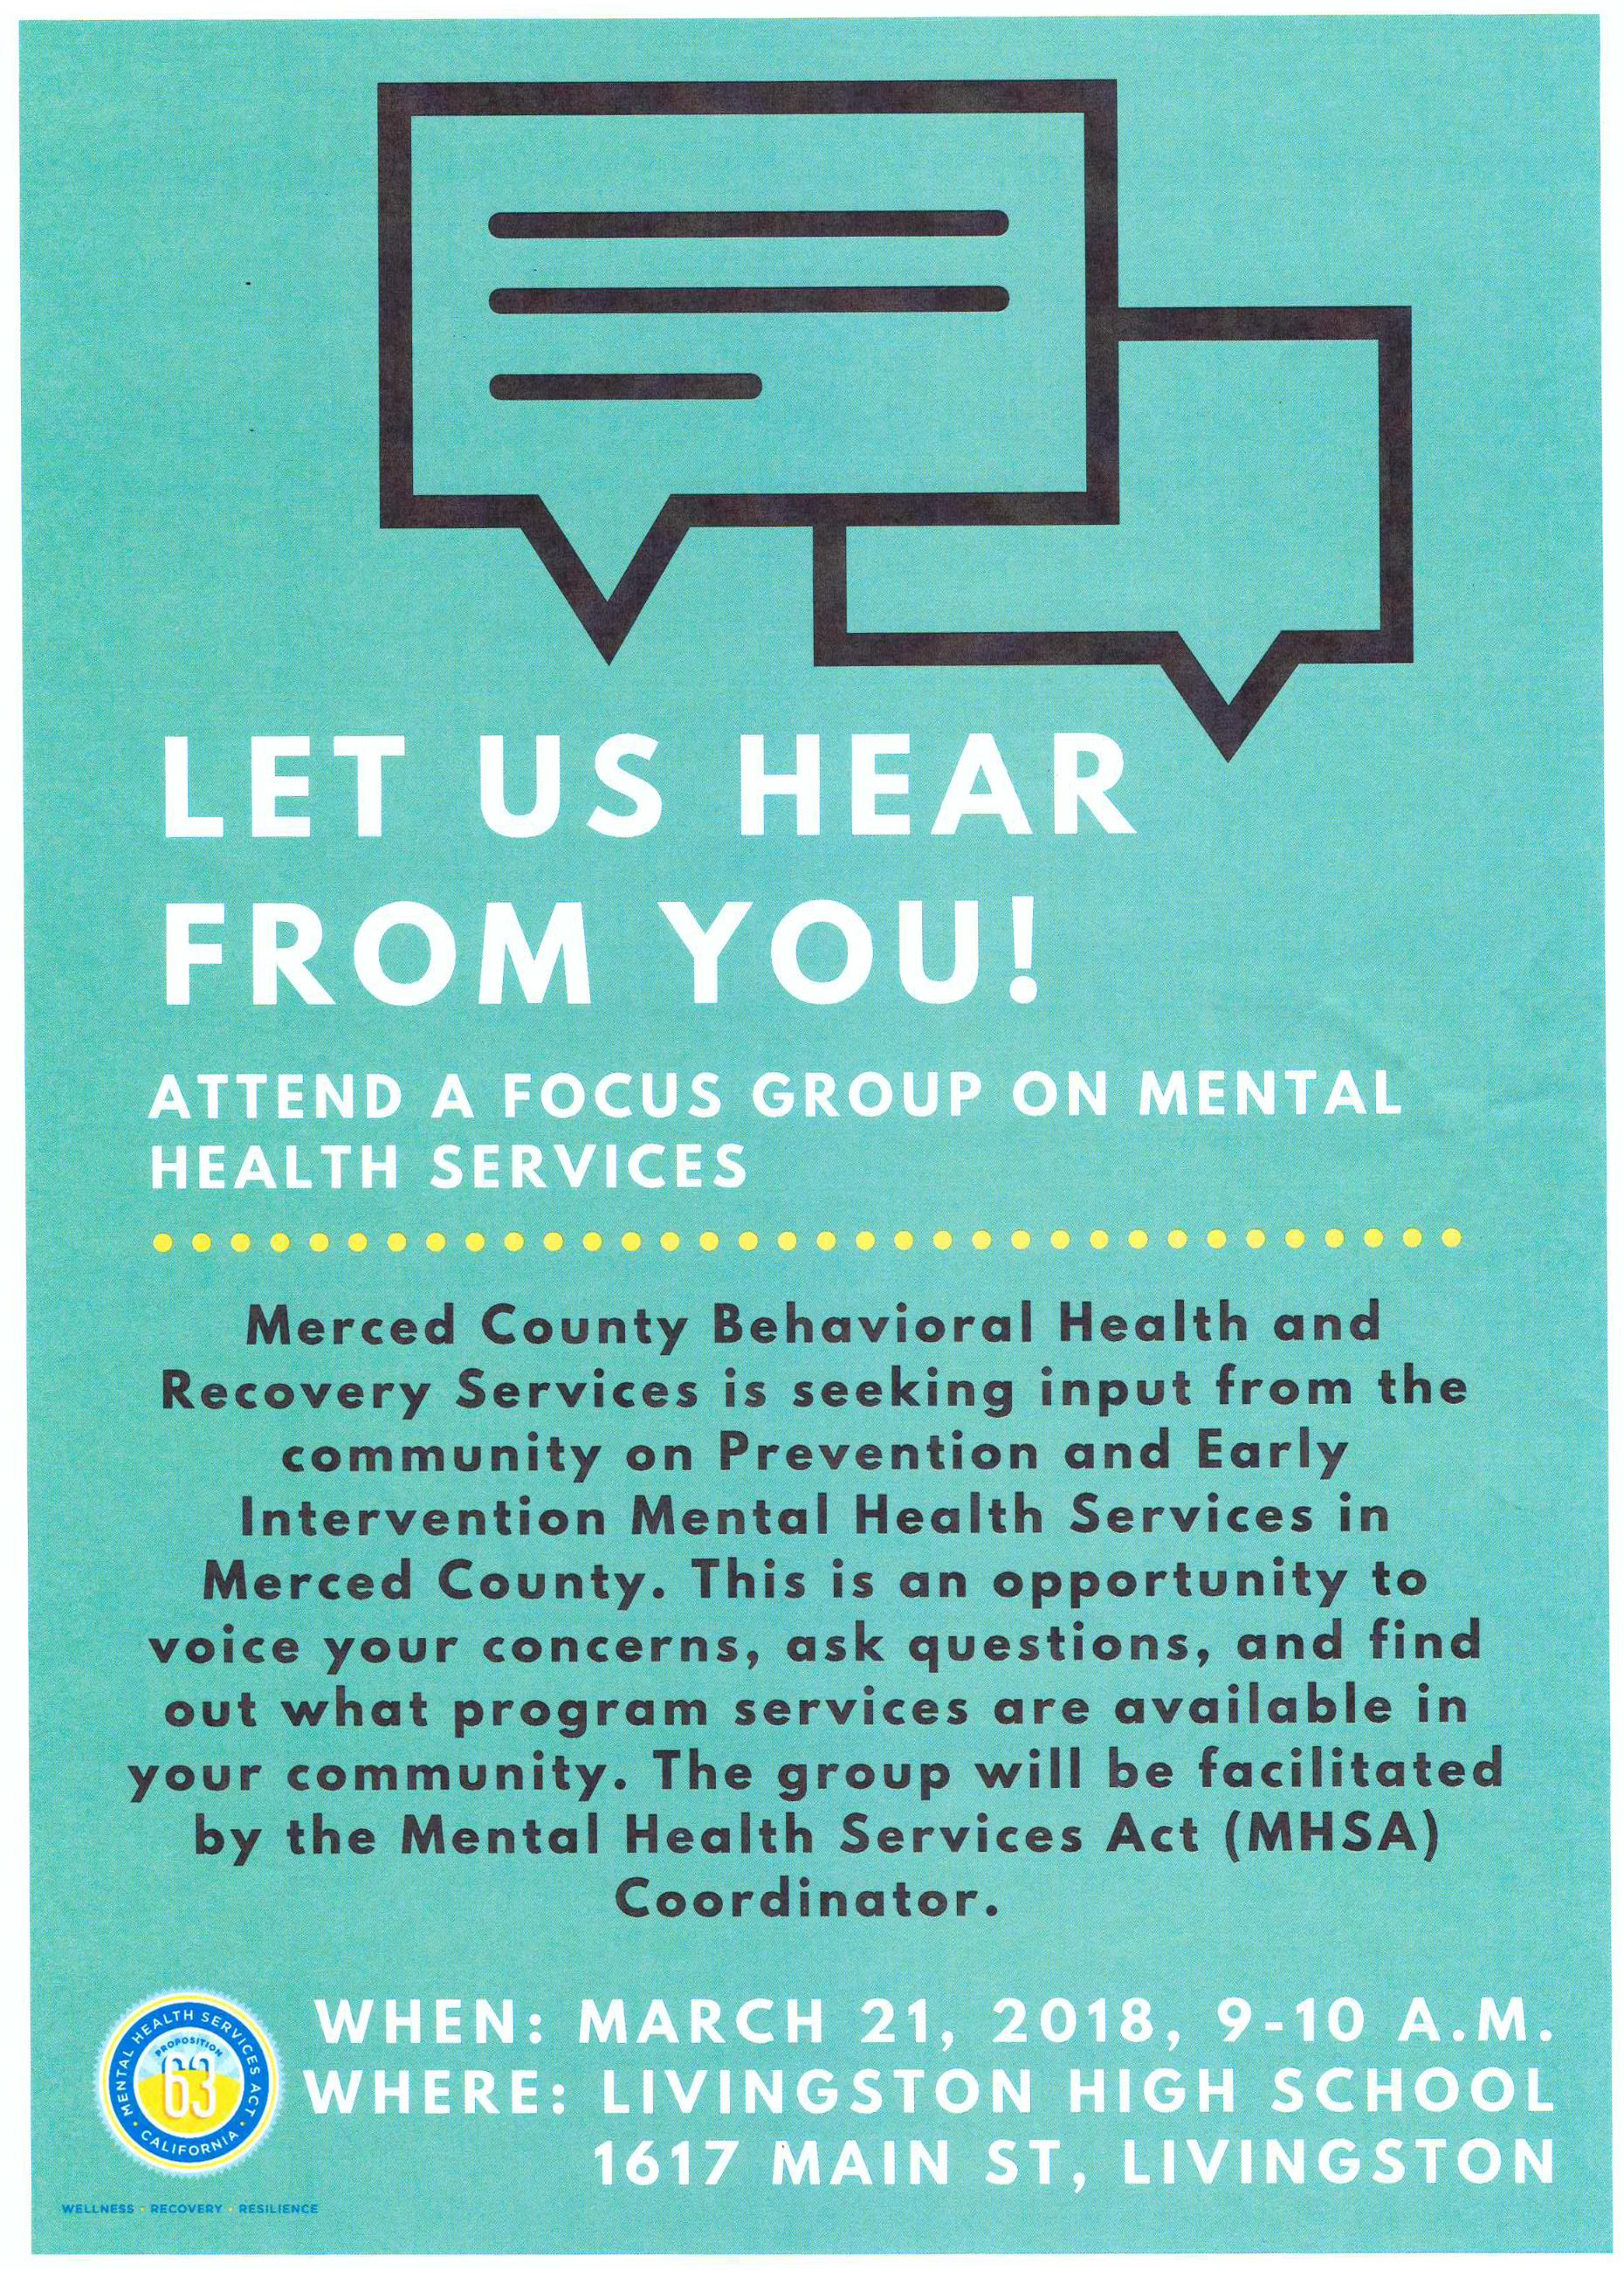 Mental Health Focus Group flyer for March 21